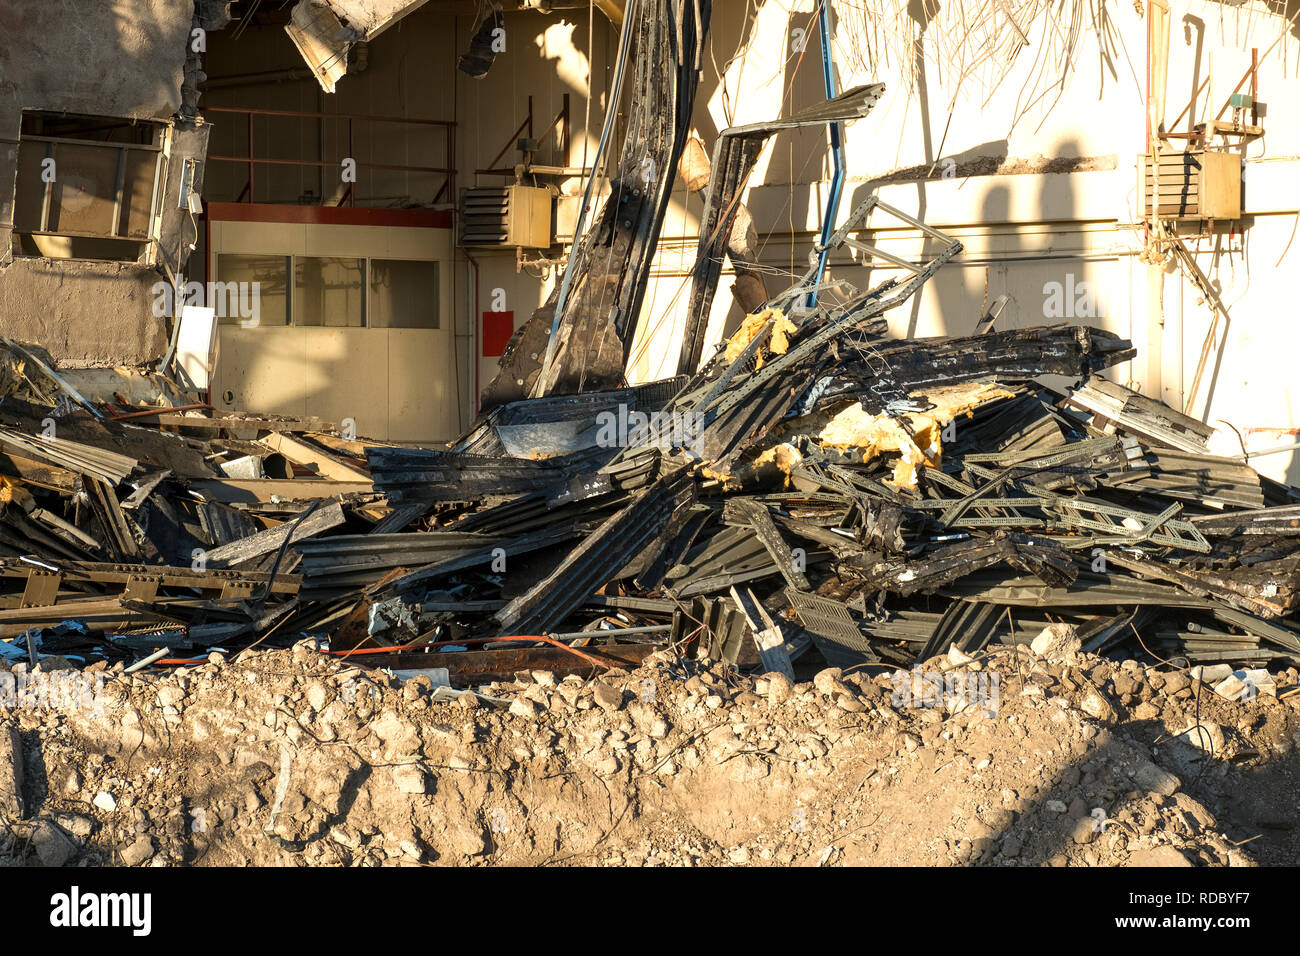 Pile of twisted and broken metal from a demolished factory background - Stock Image